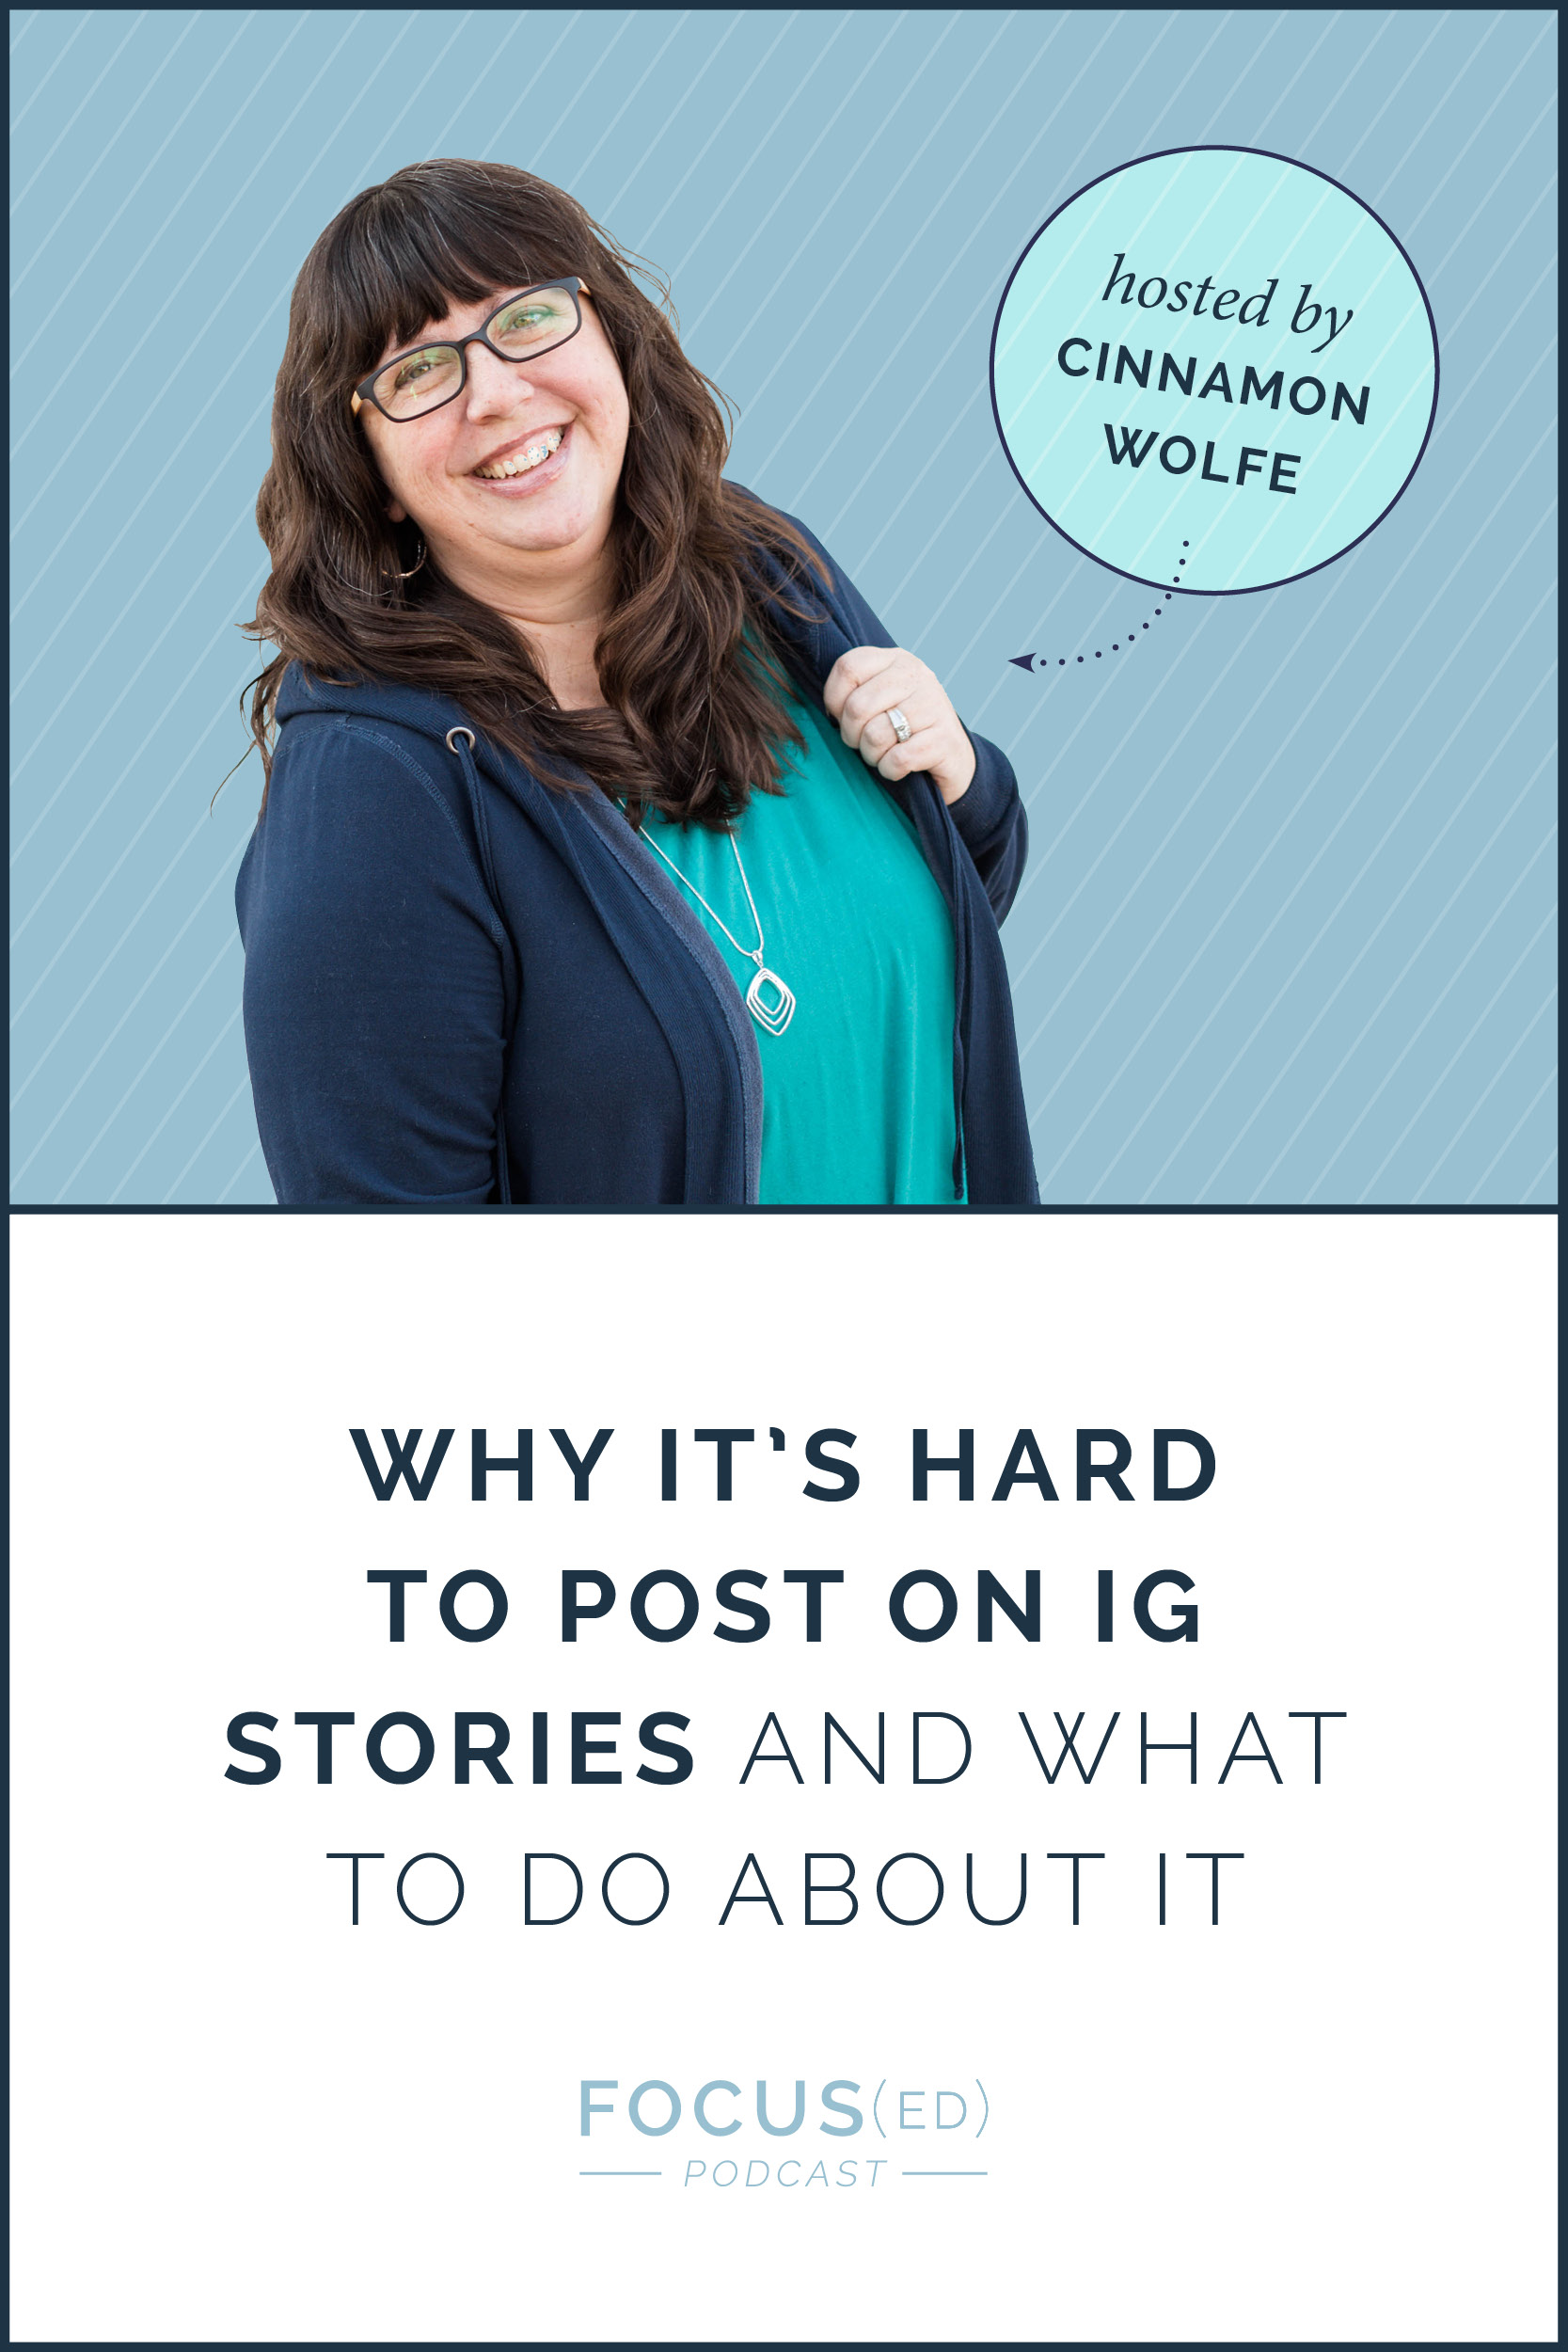 IG Stories are Hard - You can change it | cinnamonwolfe.co